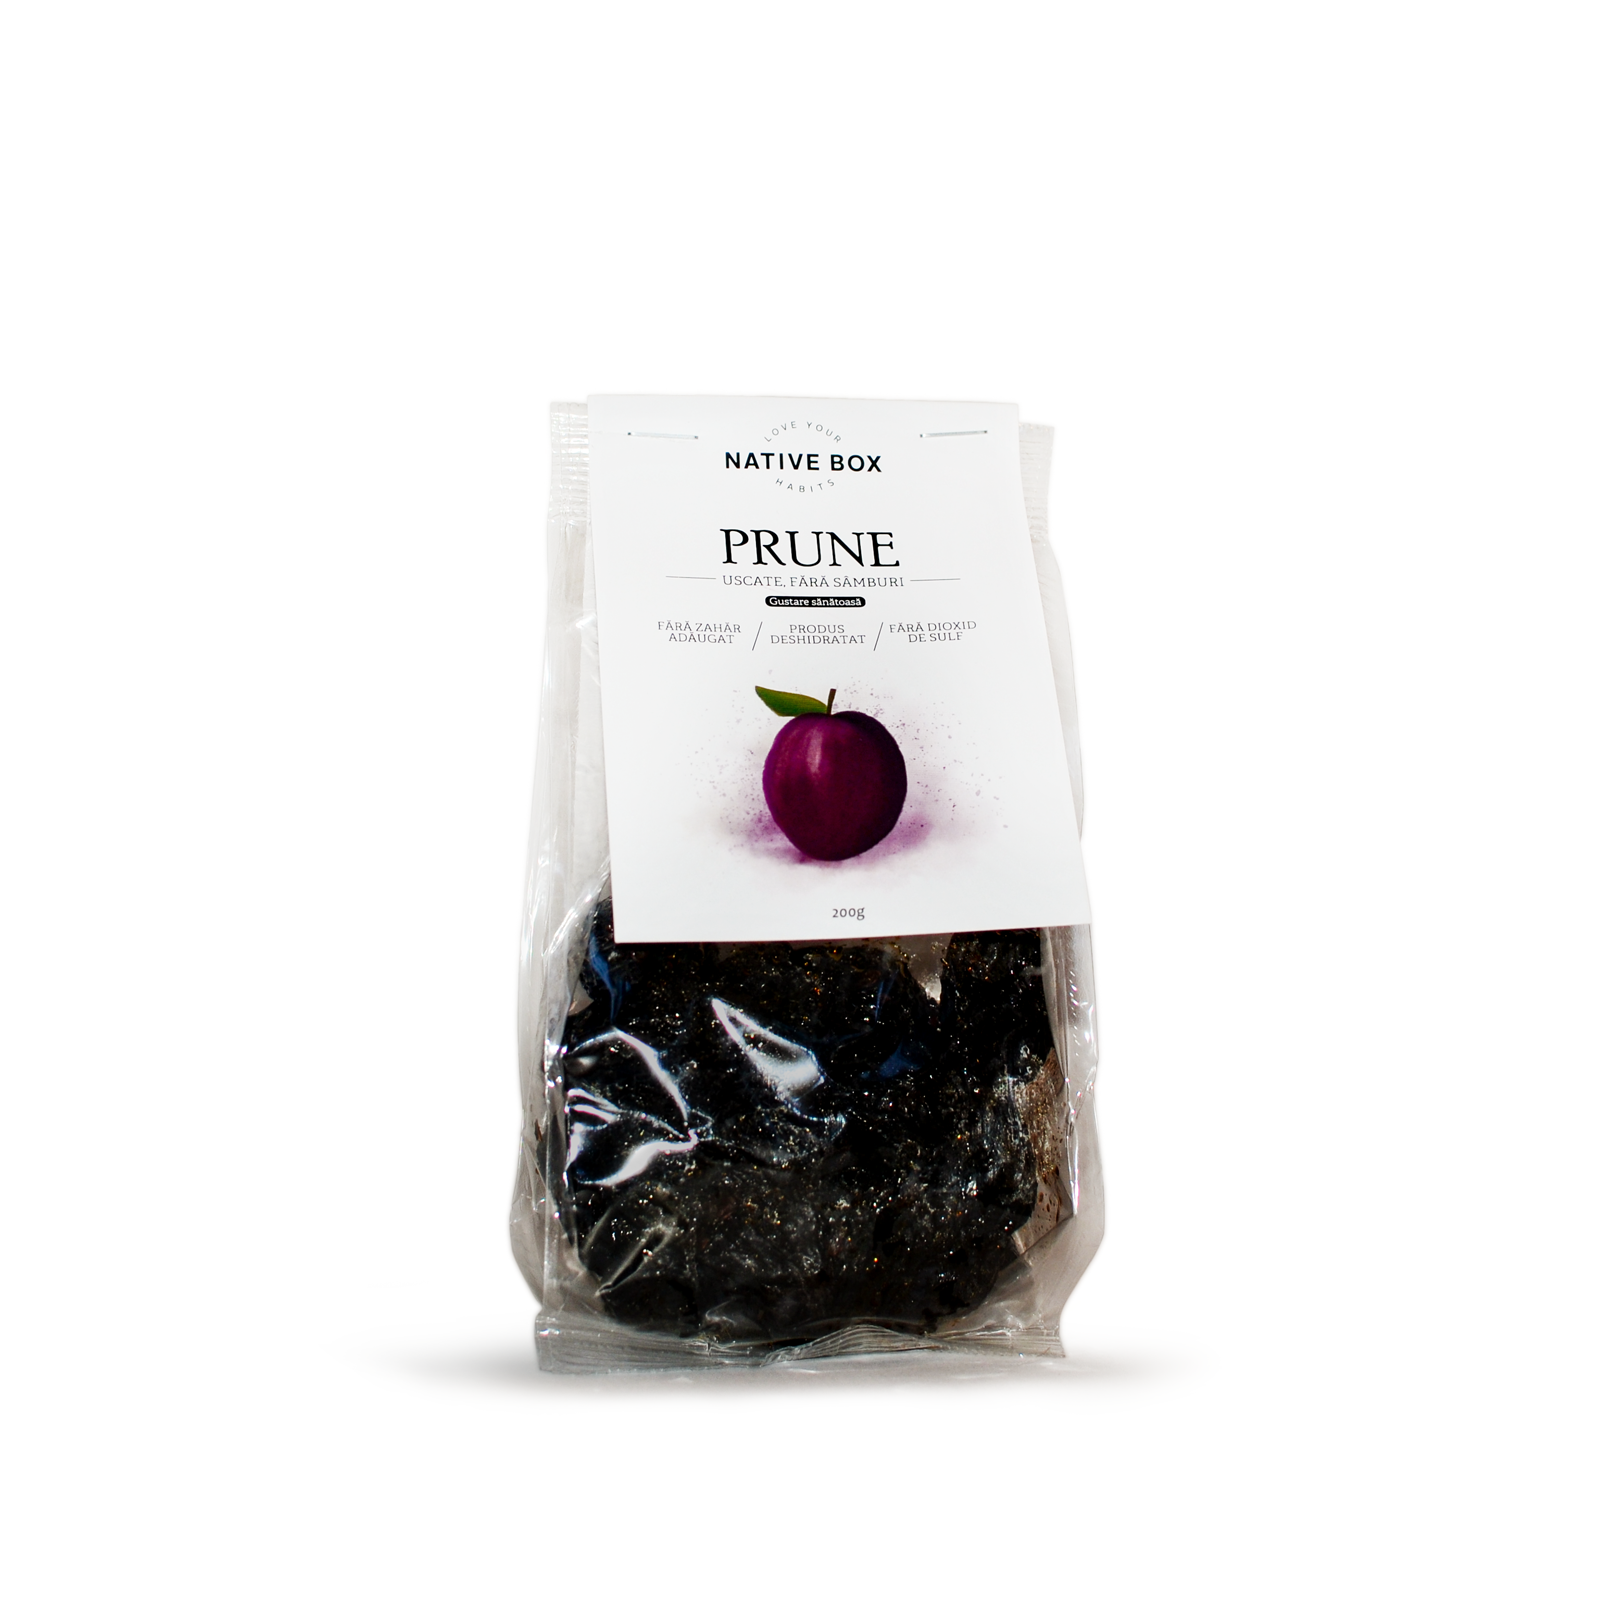 Prune uscate fara samburi nativebox 120 4049